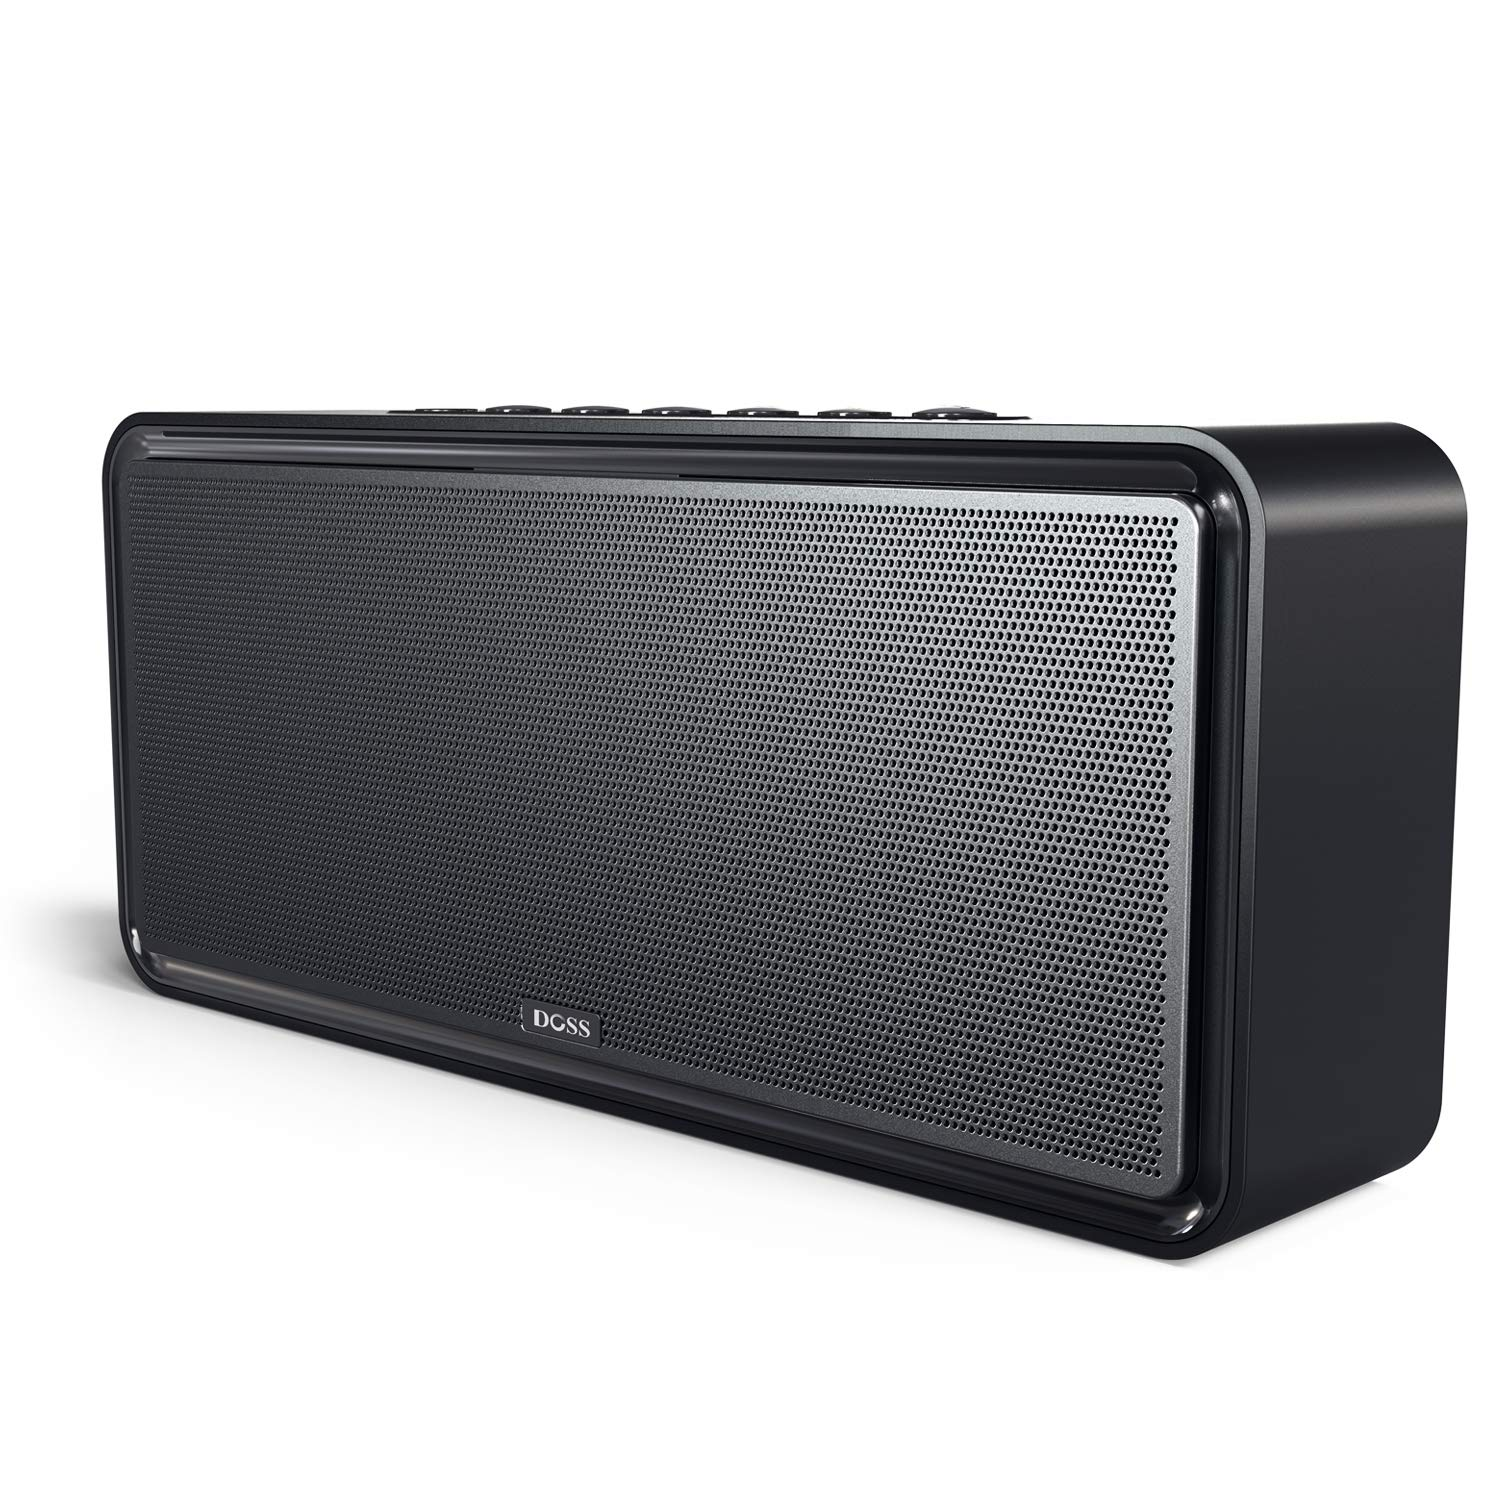 DOSS SoundBox XL 32W Bluetooth Speakers, Louder Volume 20W Driver, Enhanced Bass with 12W Subwoofer. Wireless Speaker for Phone, Tablet, TV, and More by DOSS